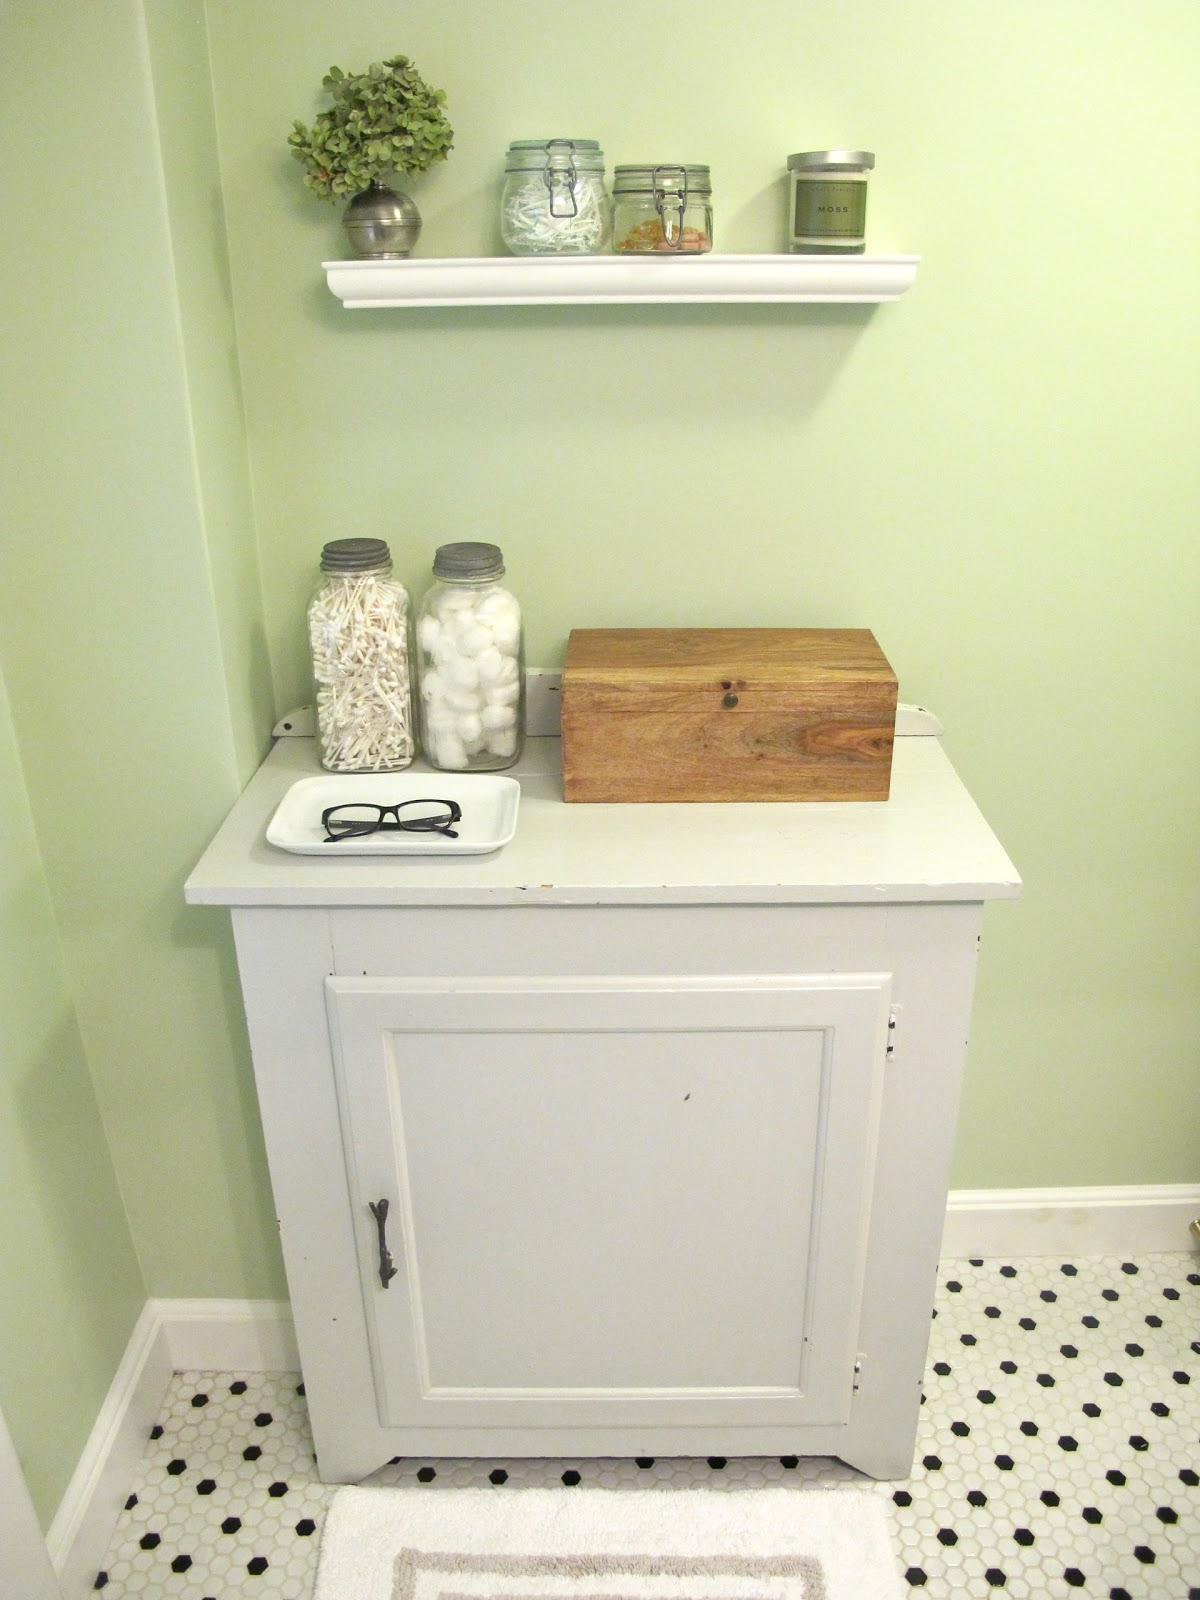 Jenny steffens hobick bathroom redo pinterest challenge for Pinterest bathroom